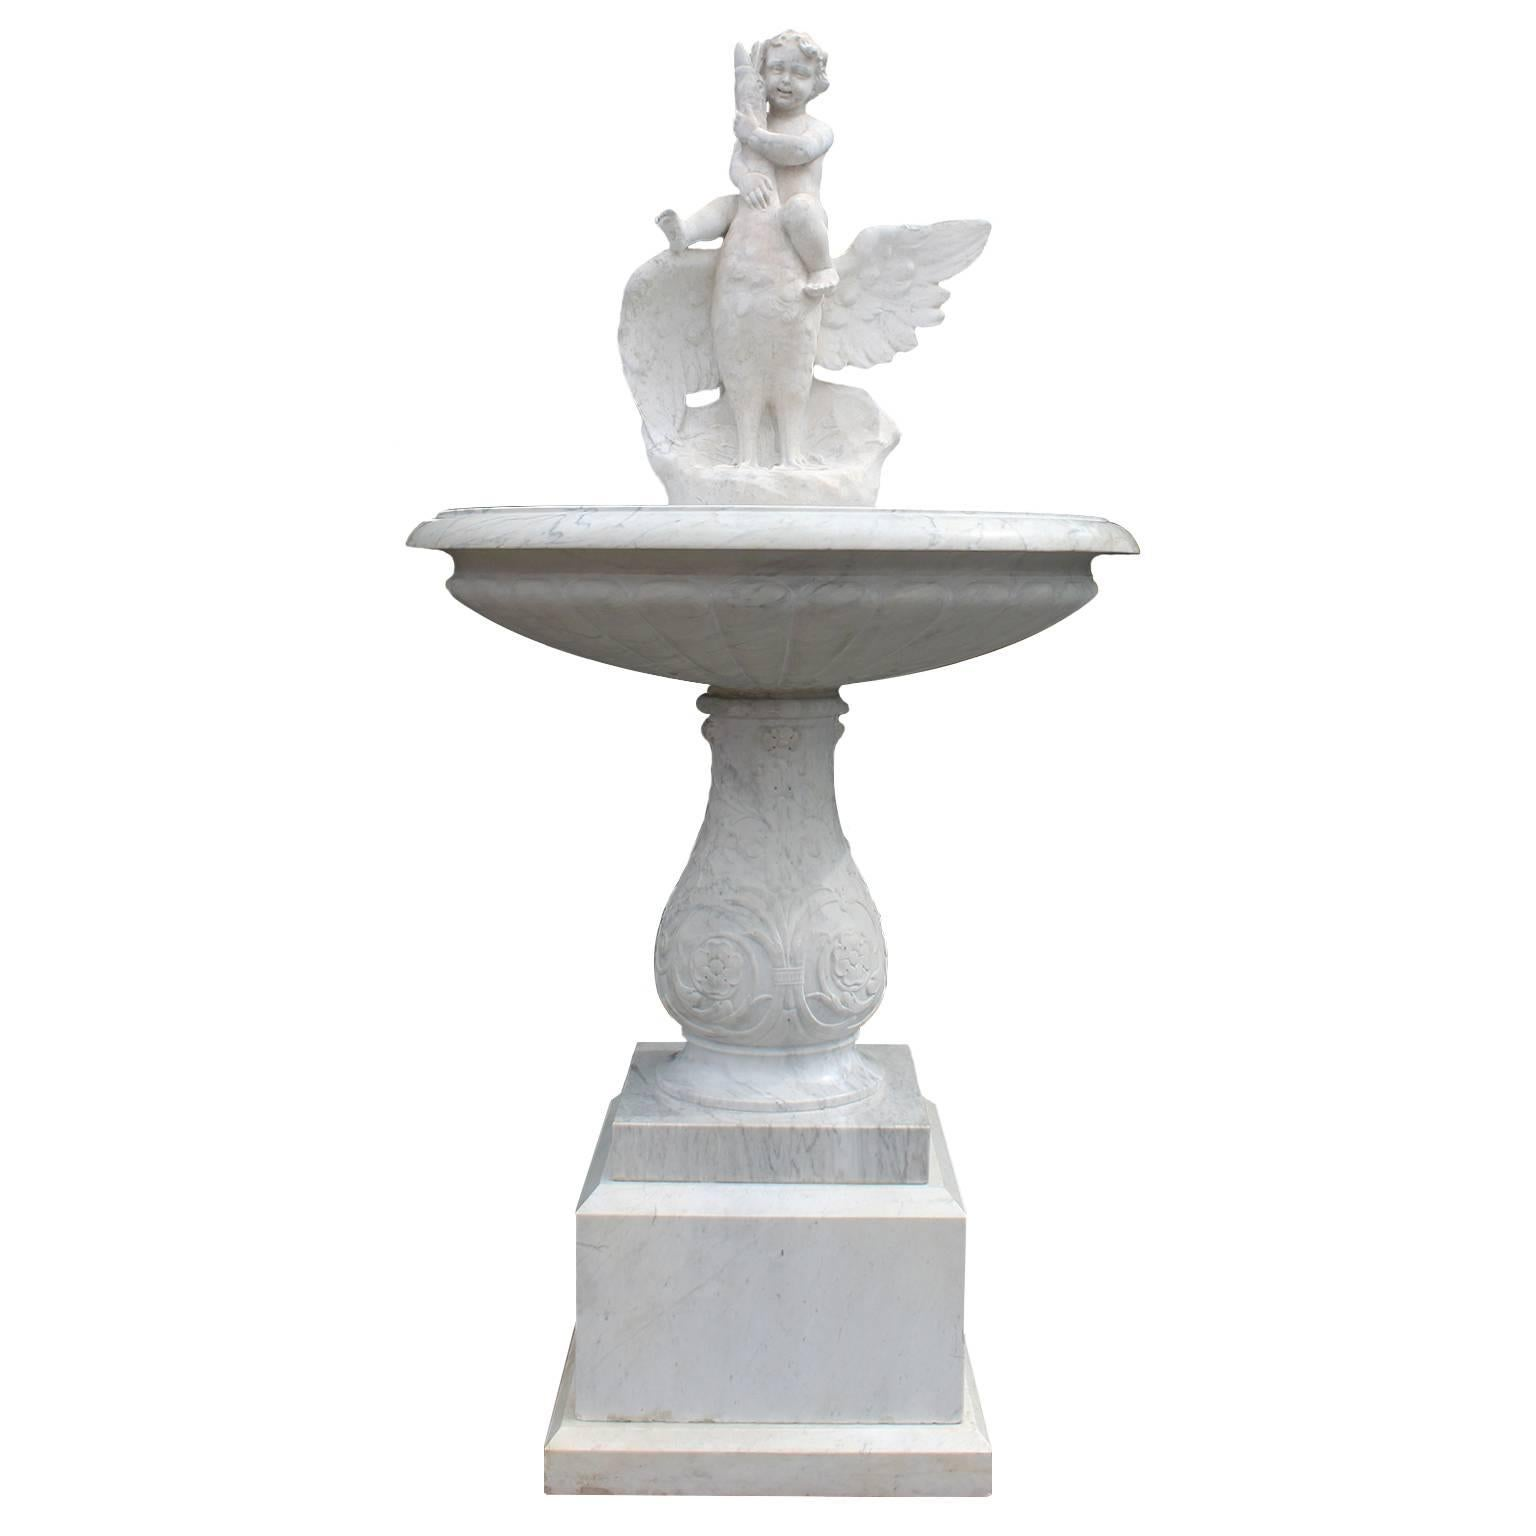 Italian 19th Century Carved Carrara Marble Figural Fountain a Putto on a Goose